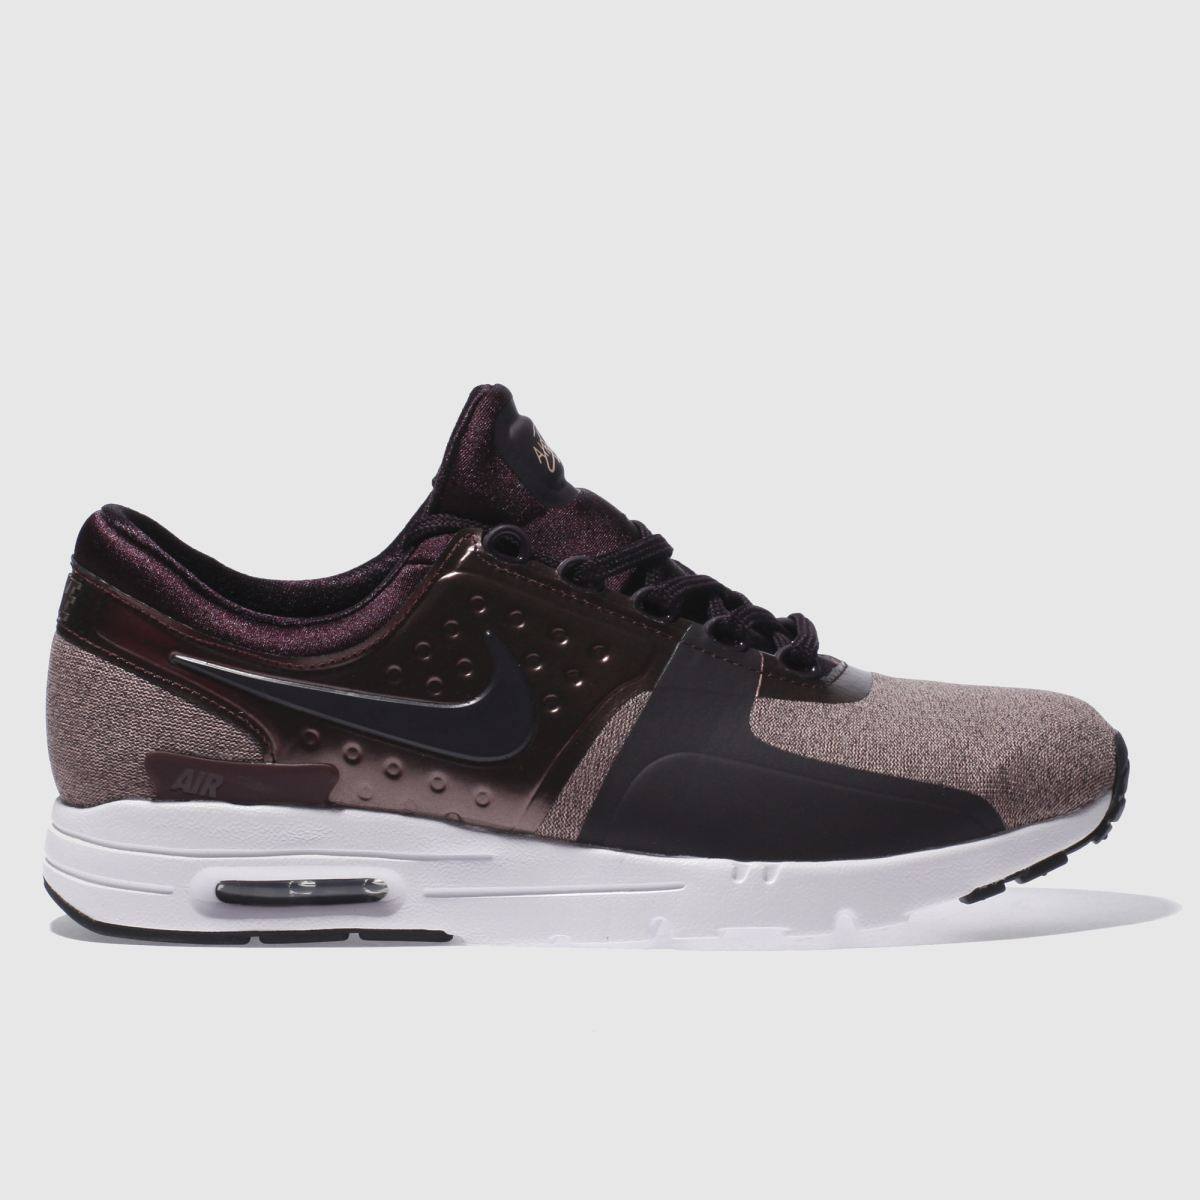 nike dark purple air max zero premium trainers